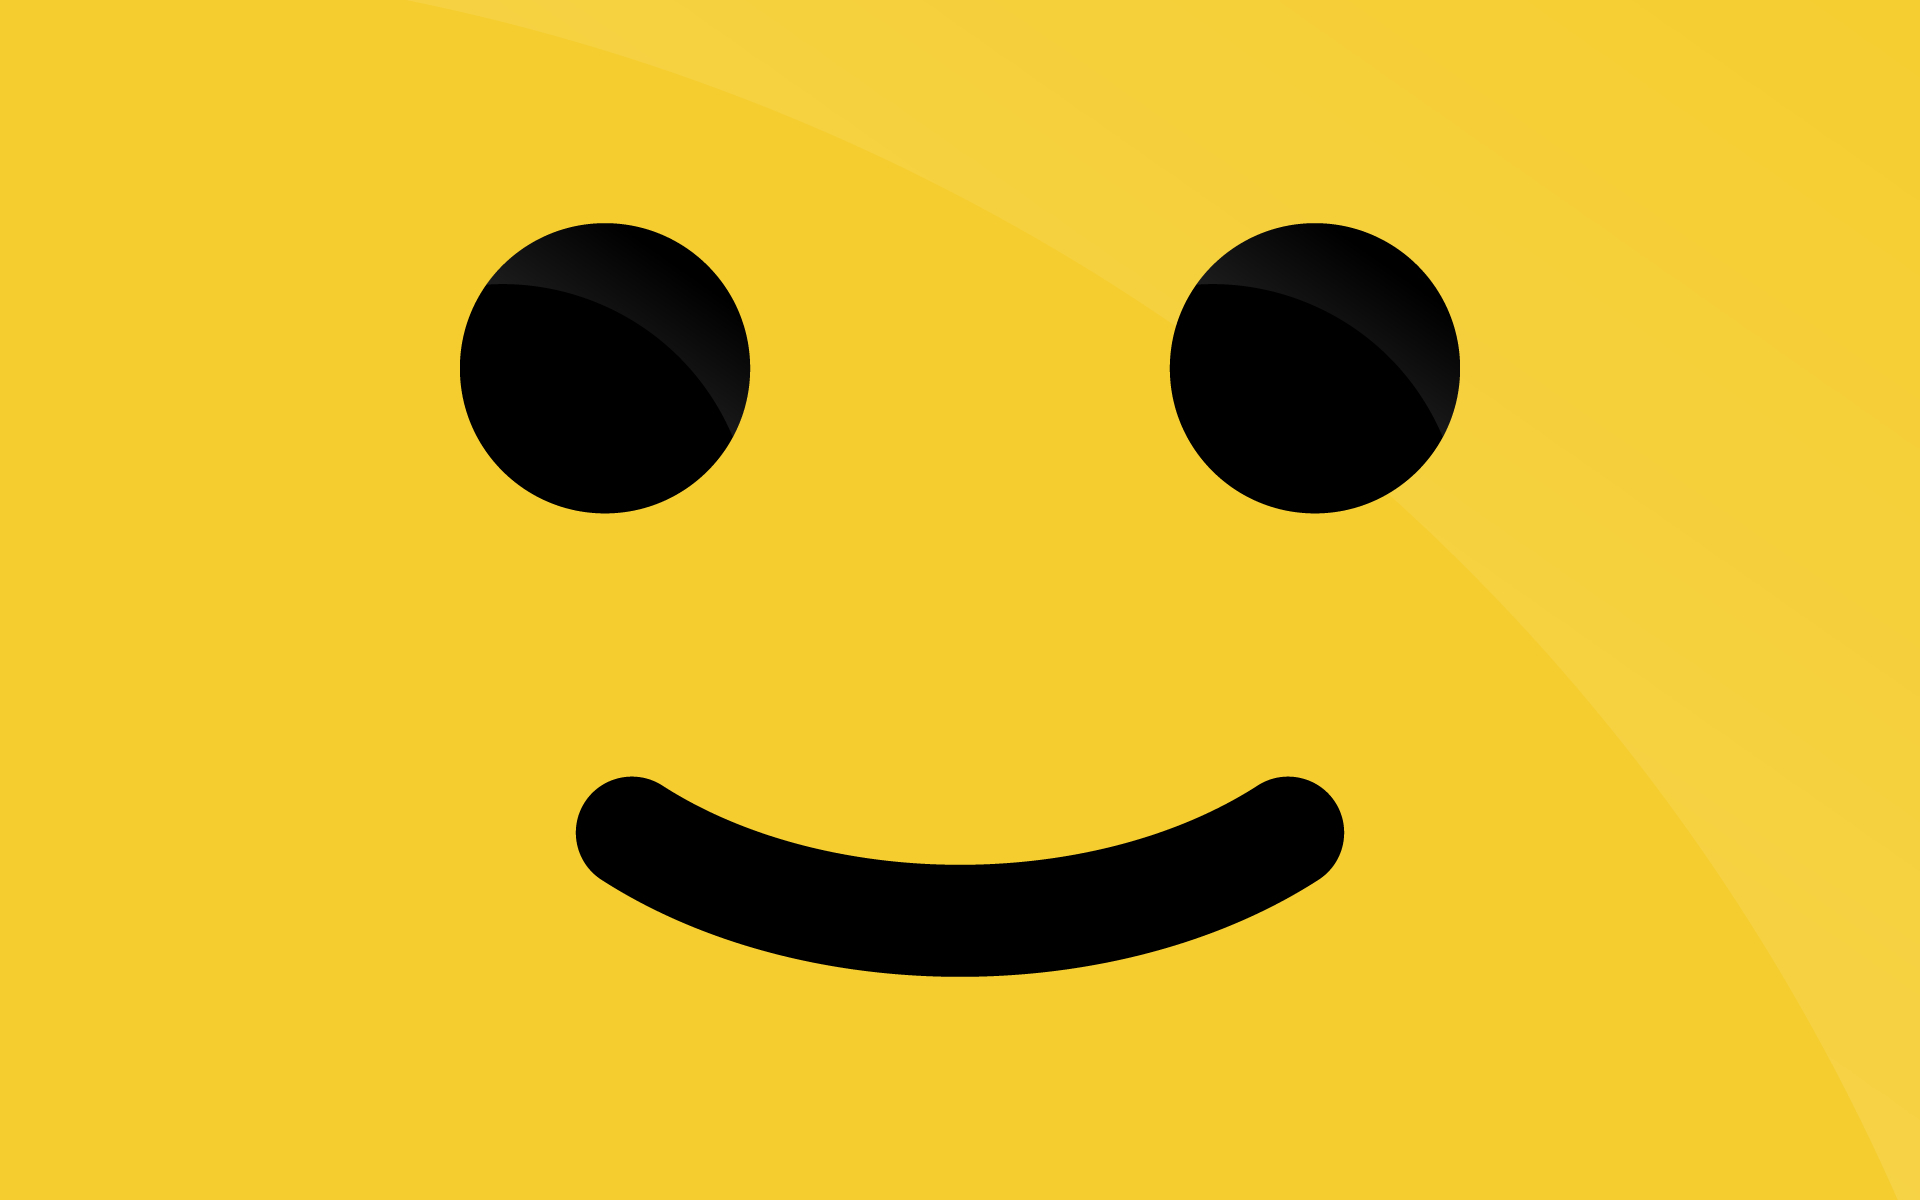 Lego minifig face by HD Wallpaper